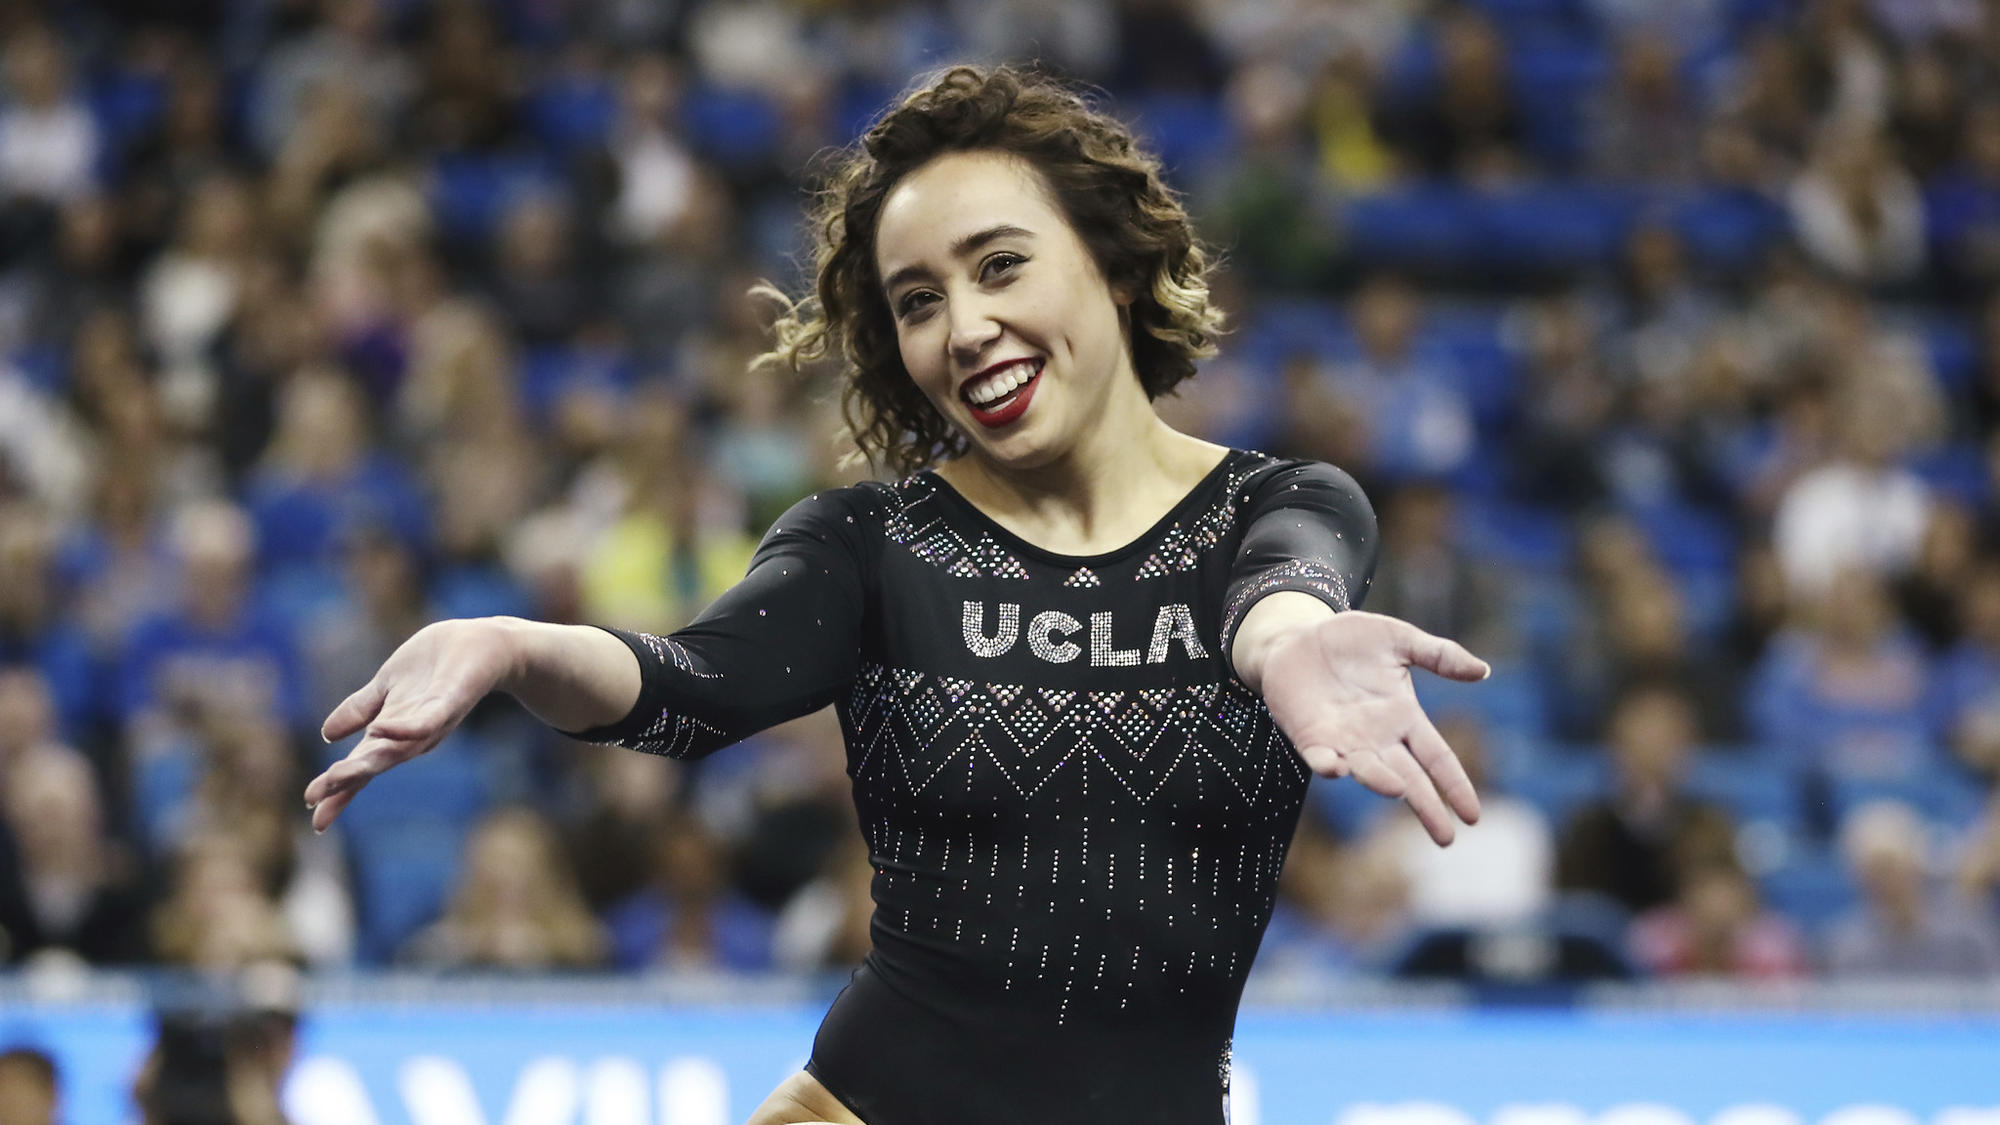 Ucla Gymnast S Stunning Floor Routine Goes Viral A 10